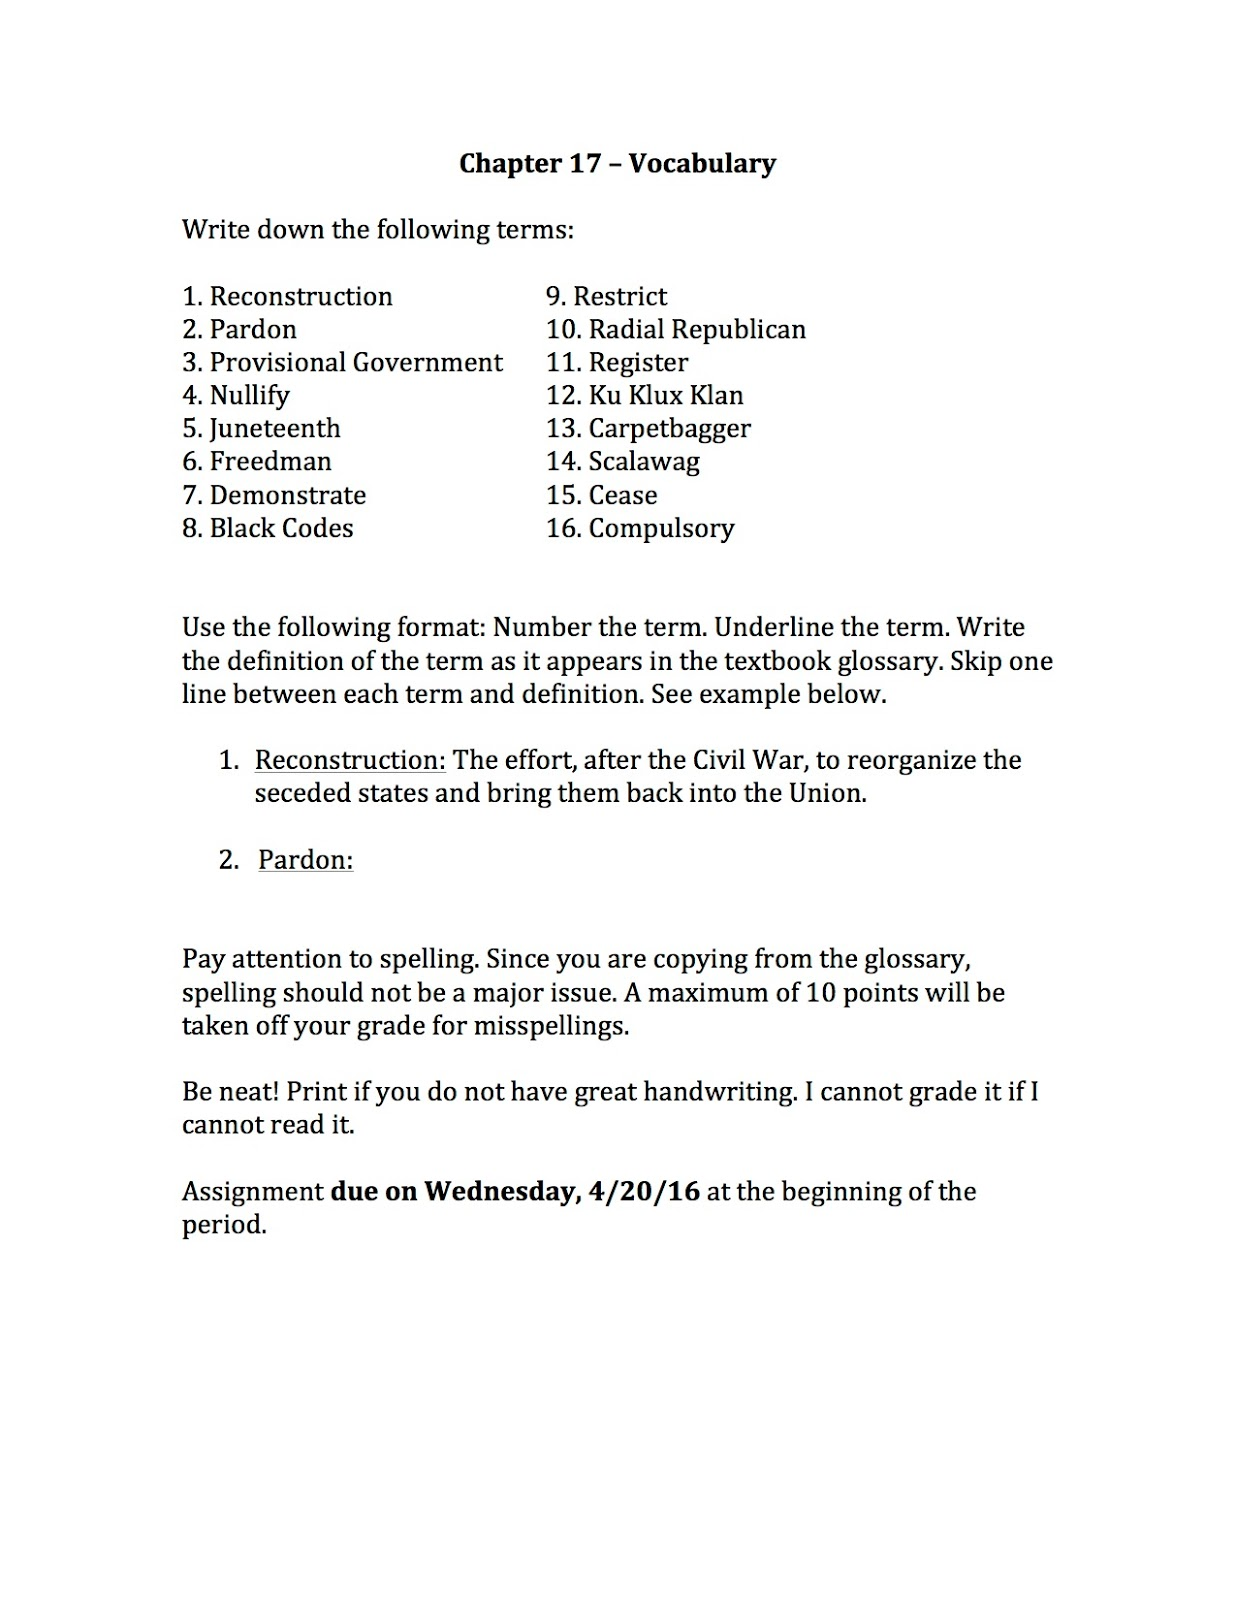 Ehms Texas History Chapter 17 Vocabulary And Lesson 1 Quiz Assignments Due Tomorrow